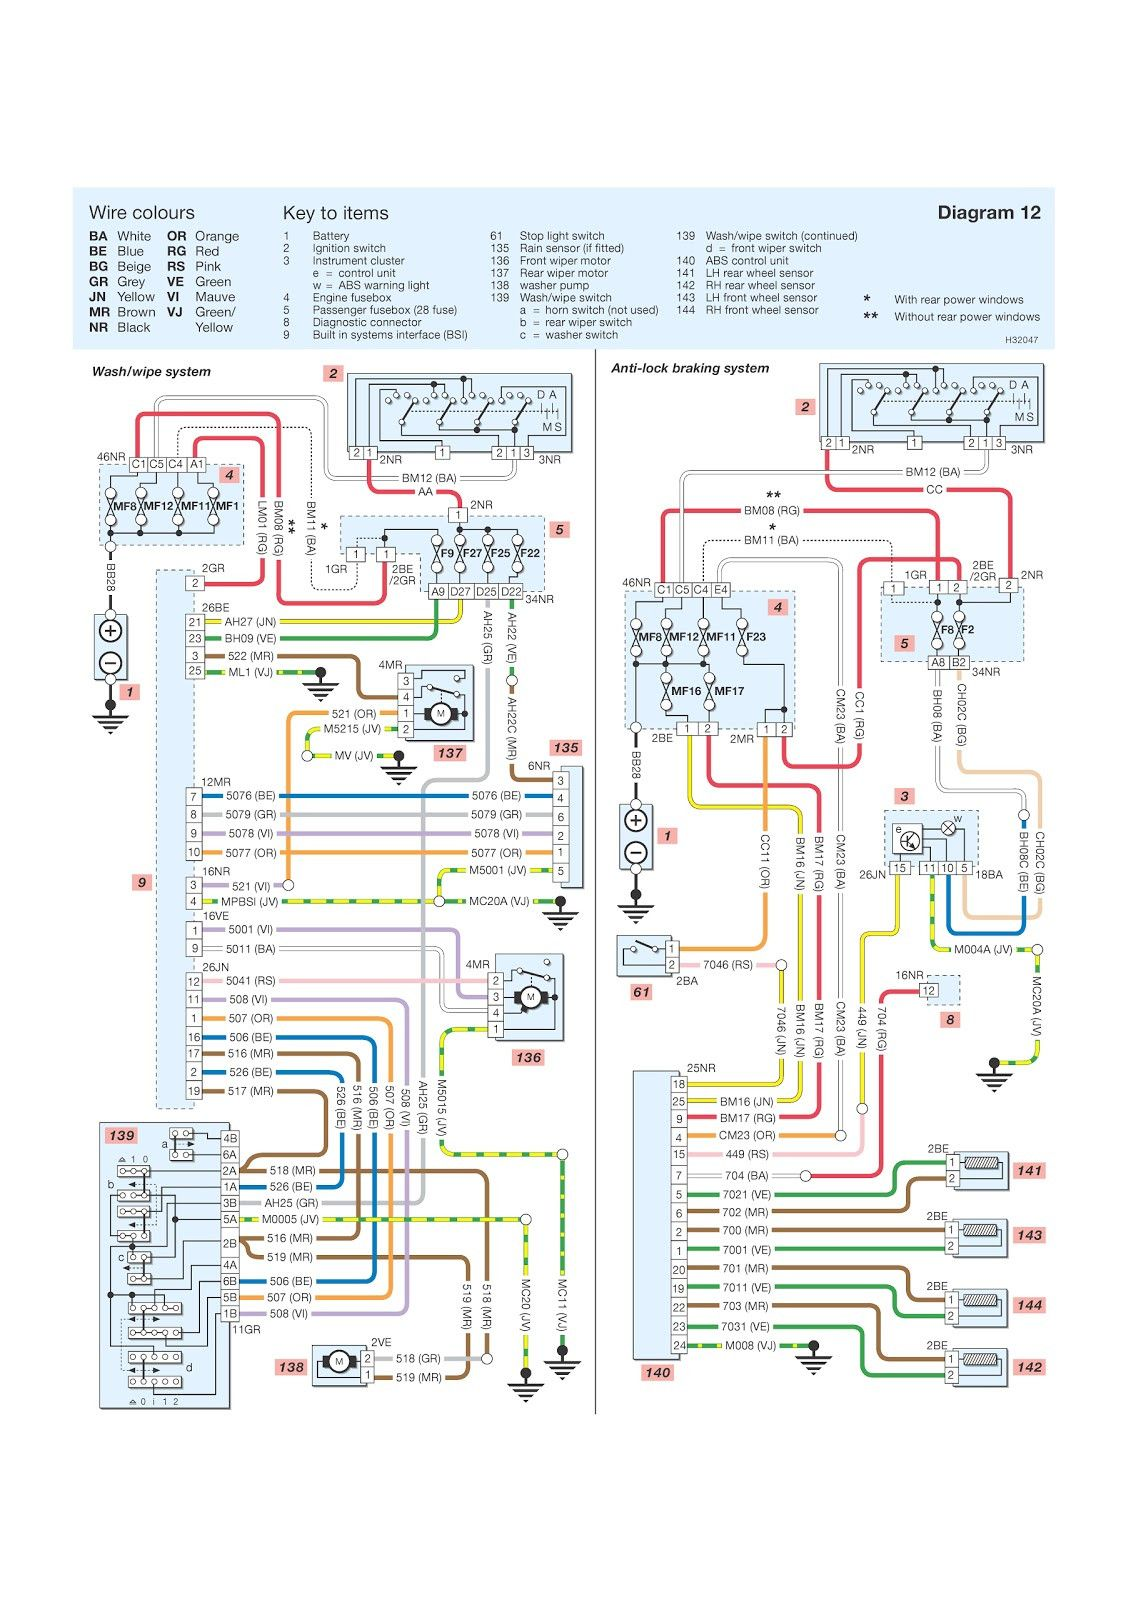 peugeot wiring diagrams 206 wiring diagram portal u2022 rh getcircuitdiagram today peugeot 406 wiring diagram free download wiring diagram peugeot 406 hdi